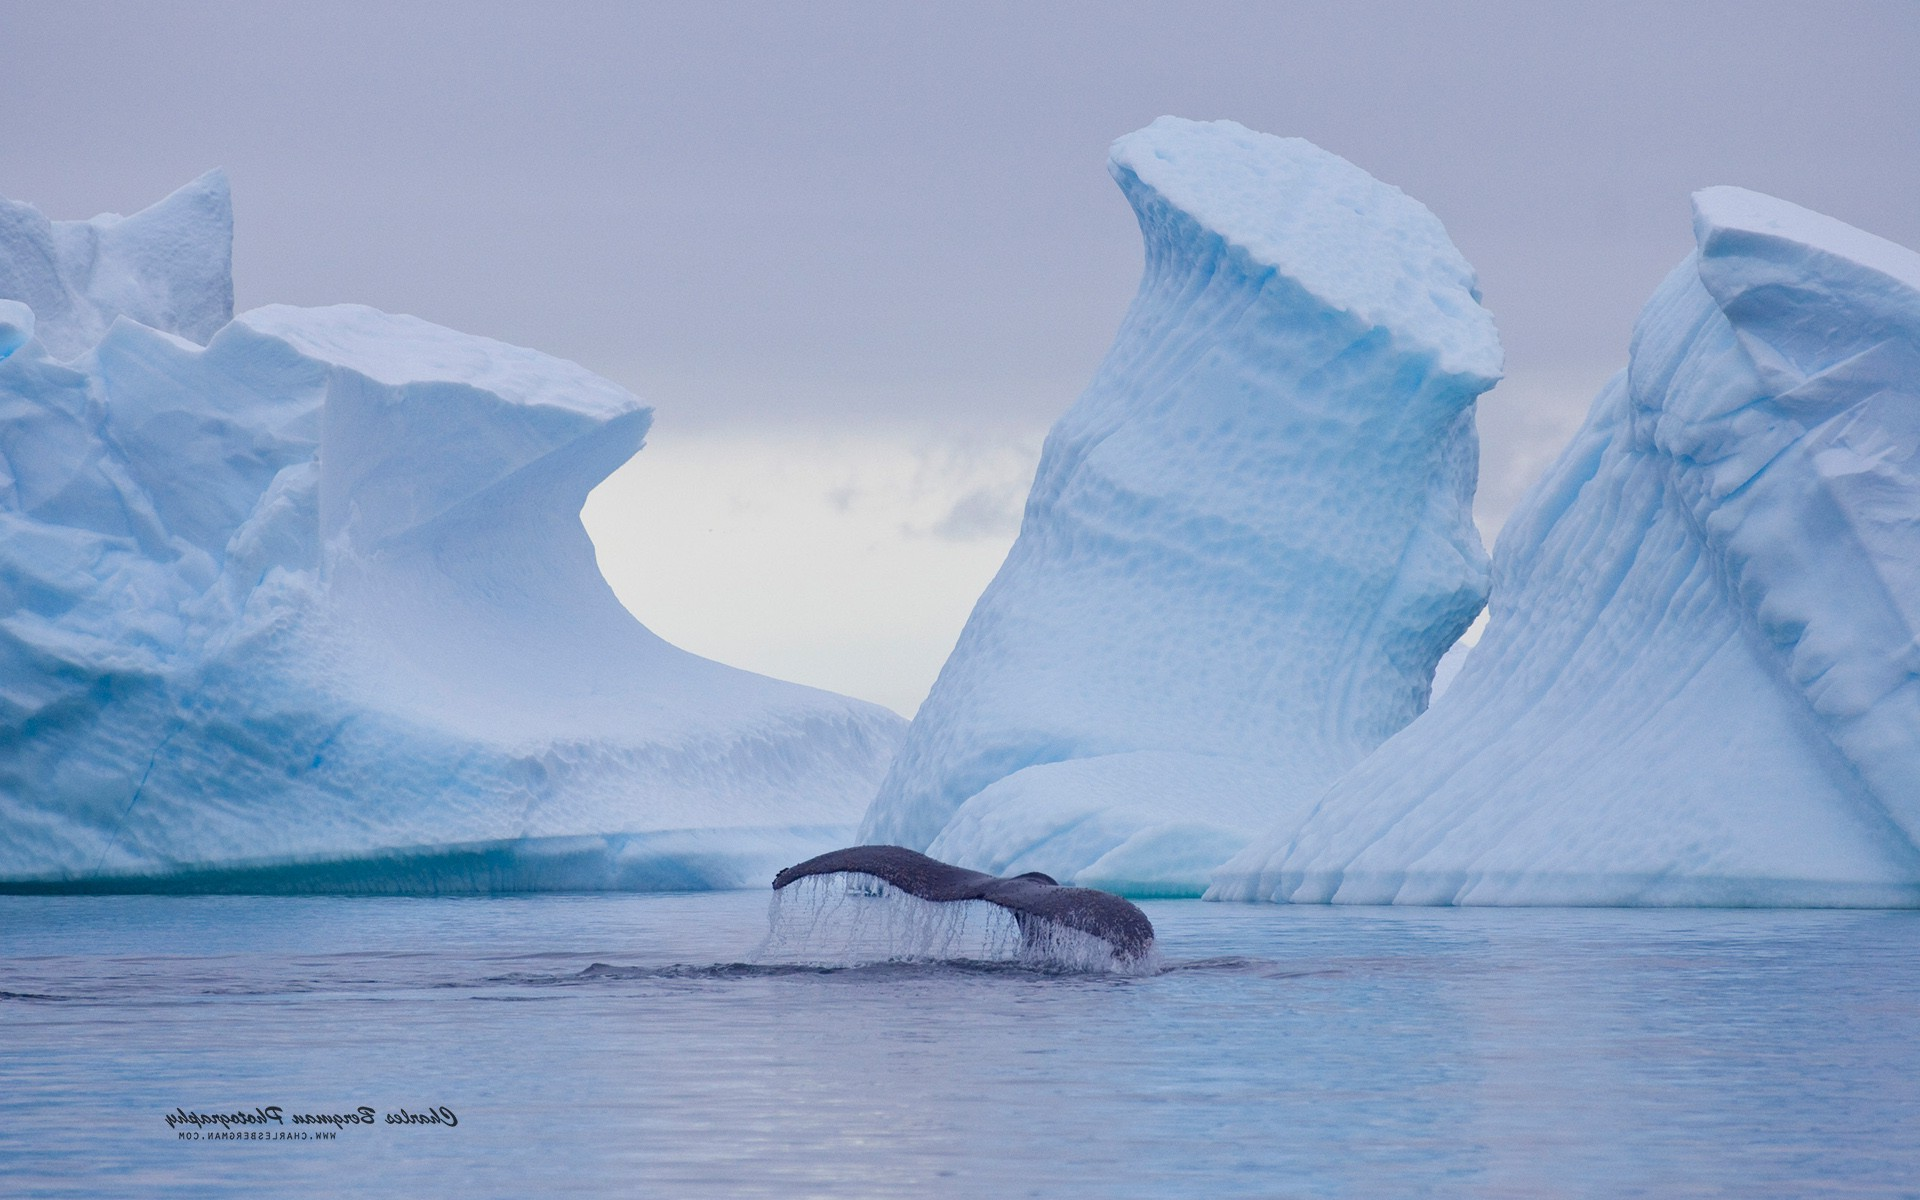 Hd Orca Wallpaper Nature Ice Landscape Animals Whale Iceberg Wallpapers